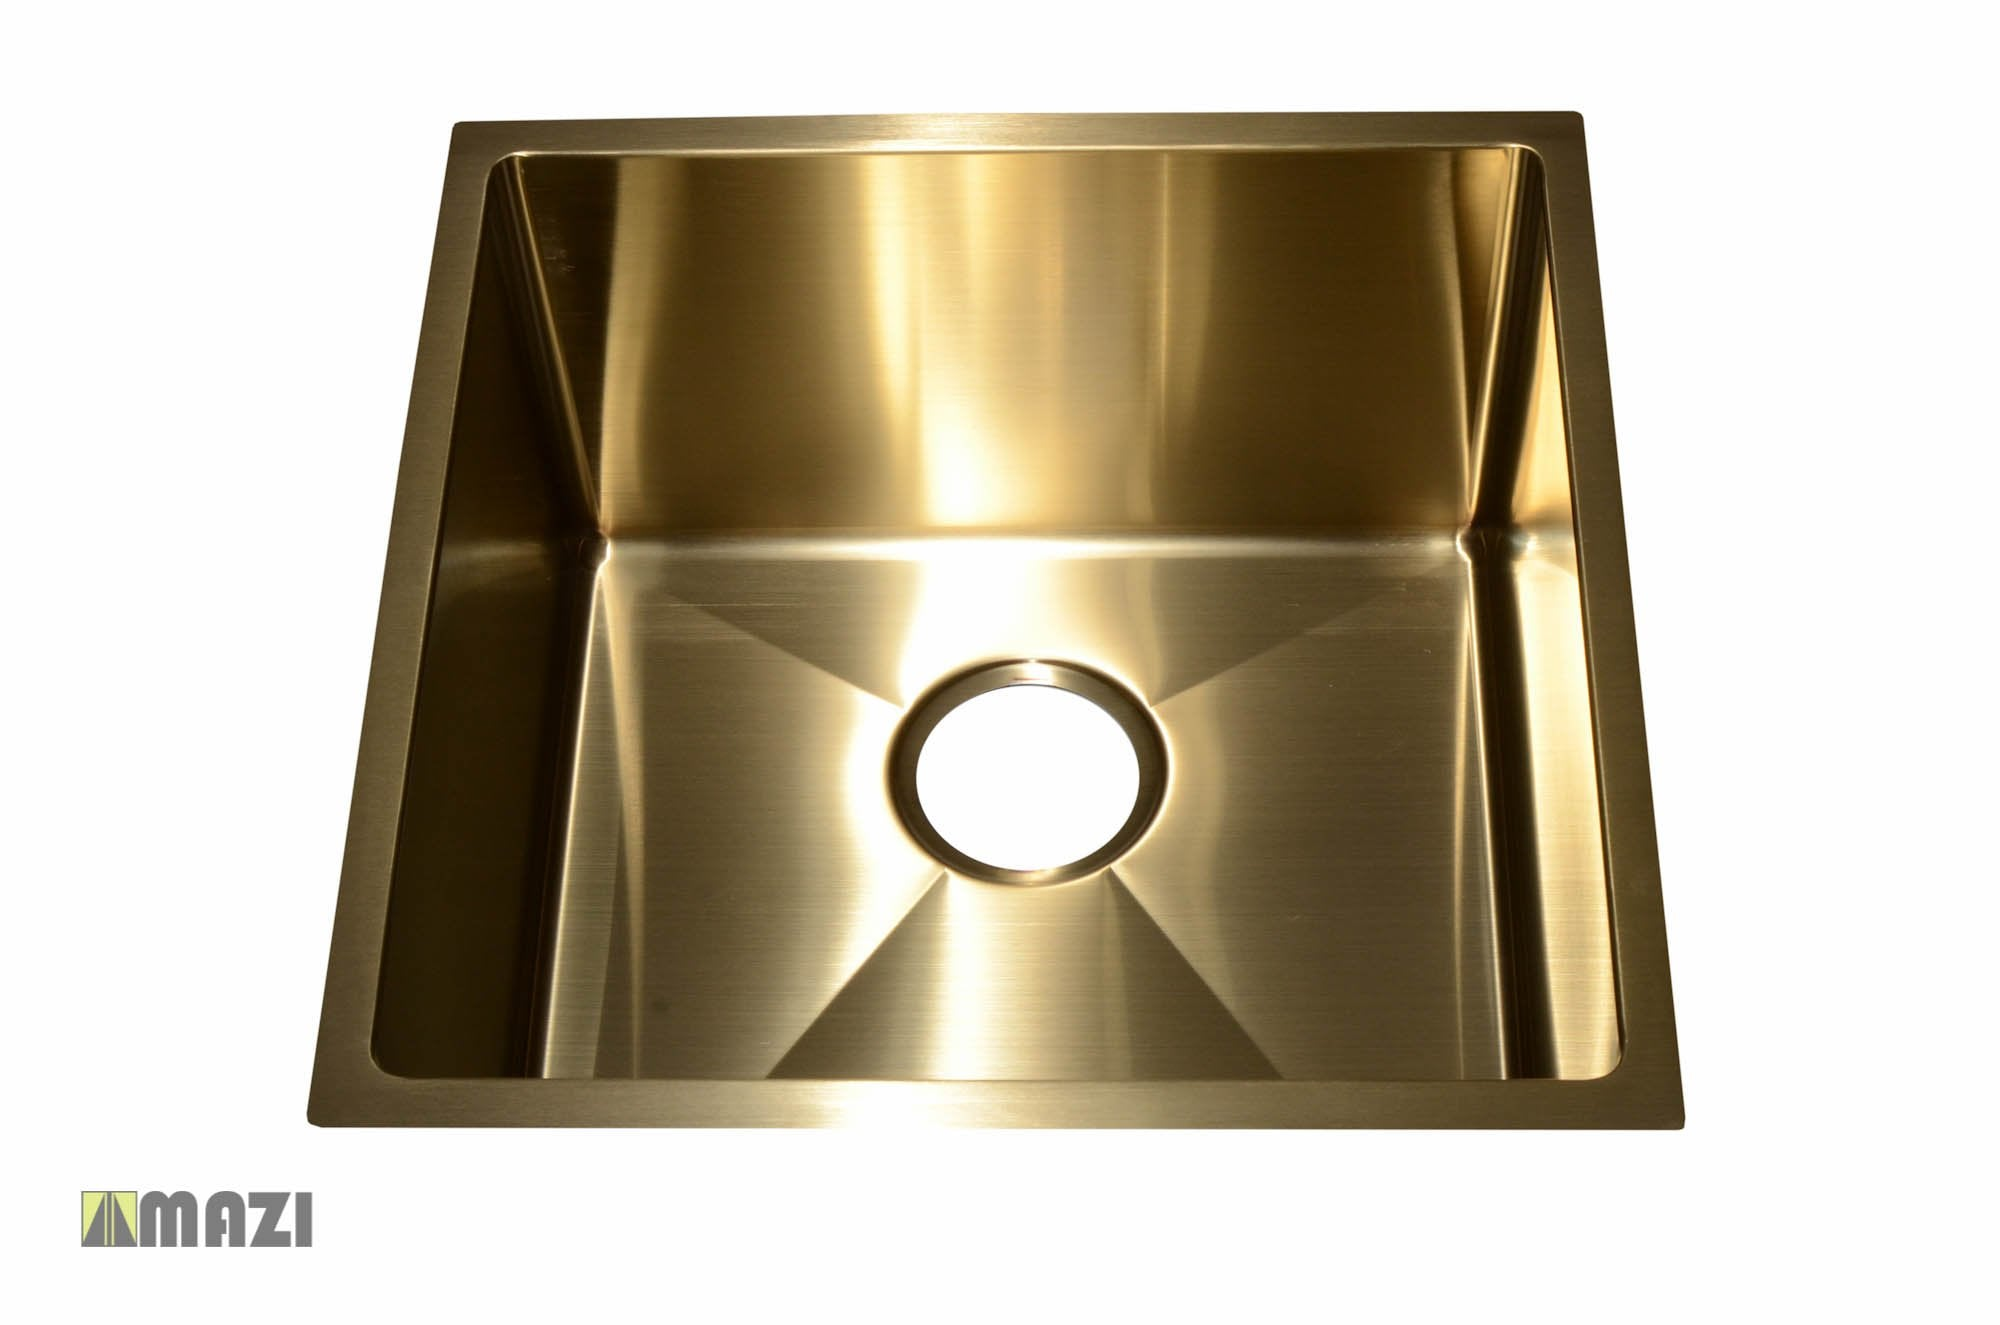 Stainless Steel Handmade Color Kitchen Sink Sb1295 Gold